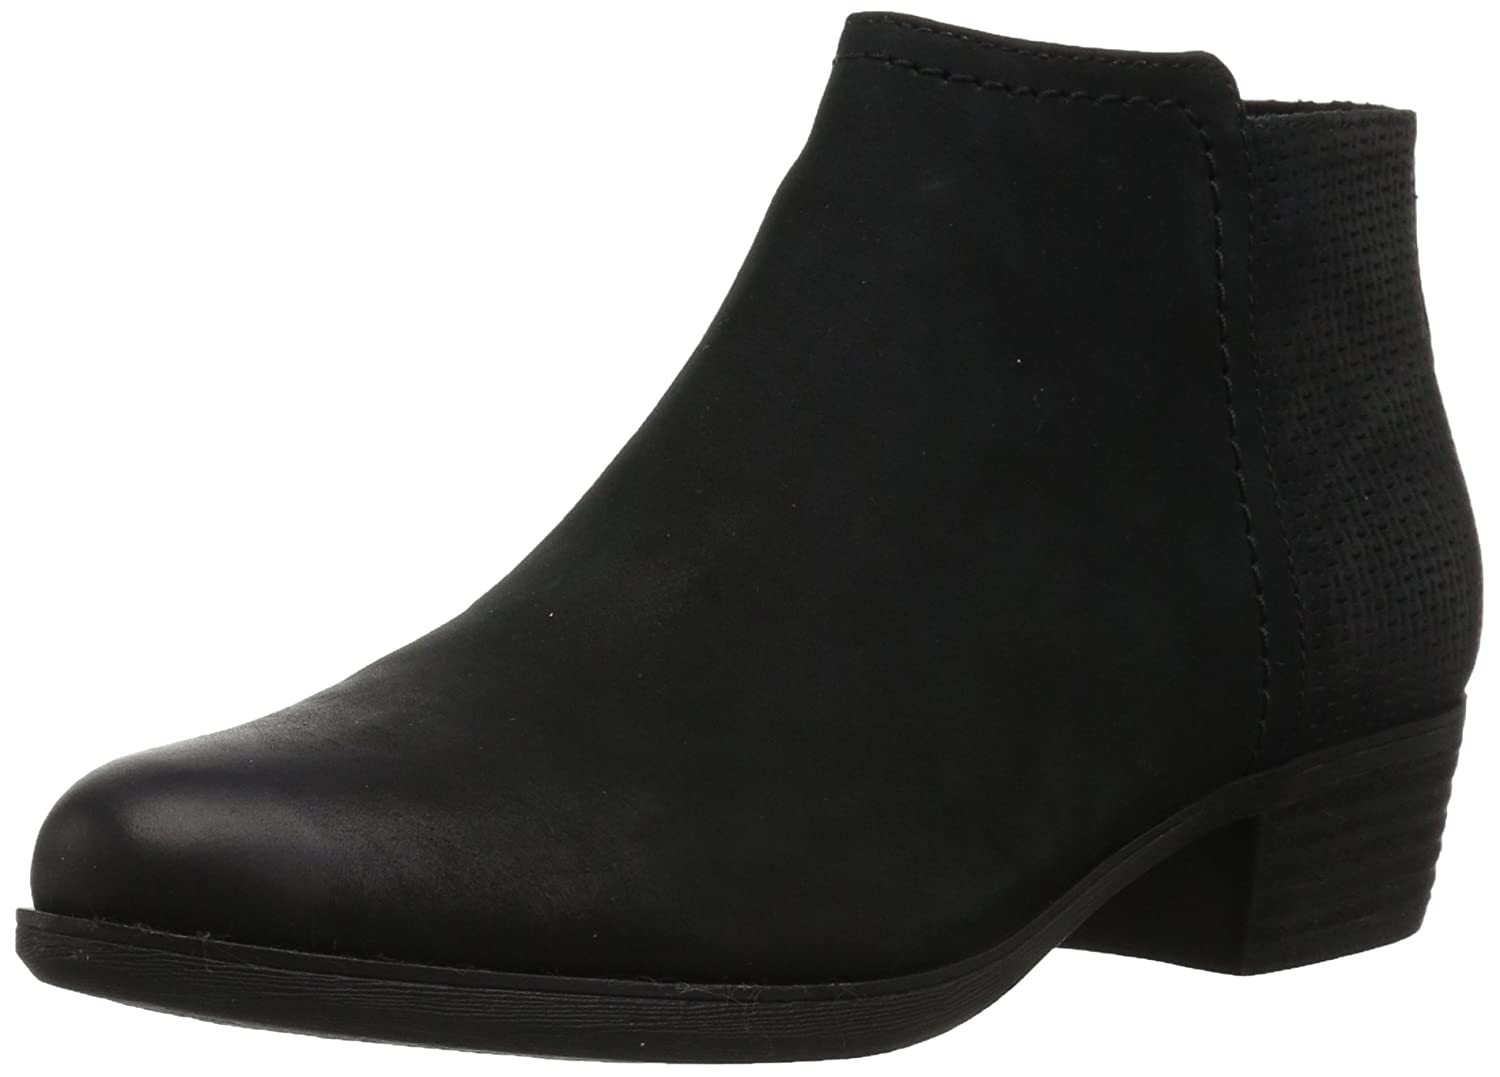 Rockport Women's Vanna 2-Part Ankle Bootie B01MUW3SI1 11 B(M) US|Black Nubuck